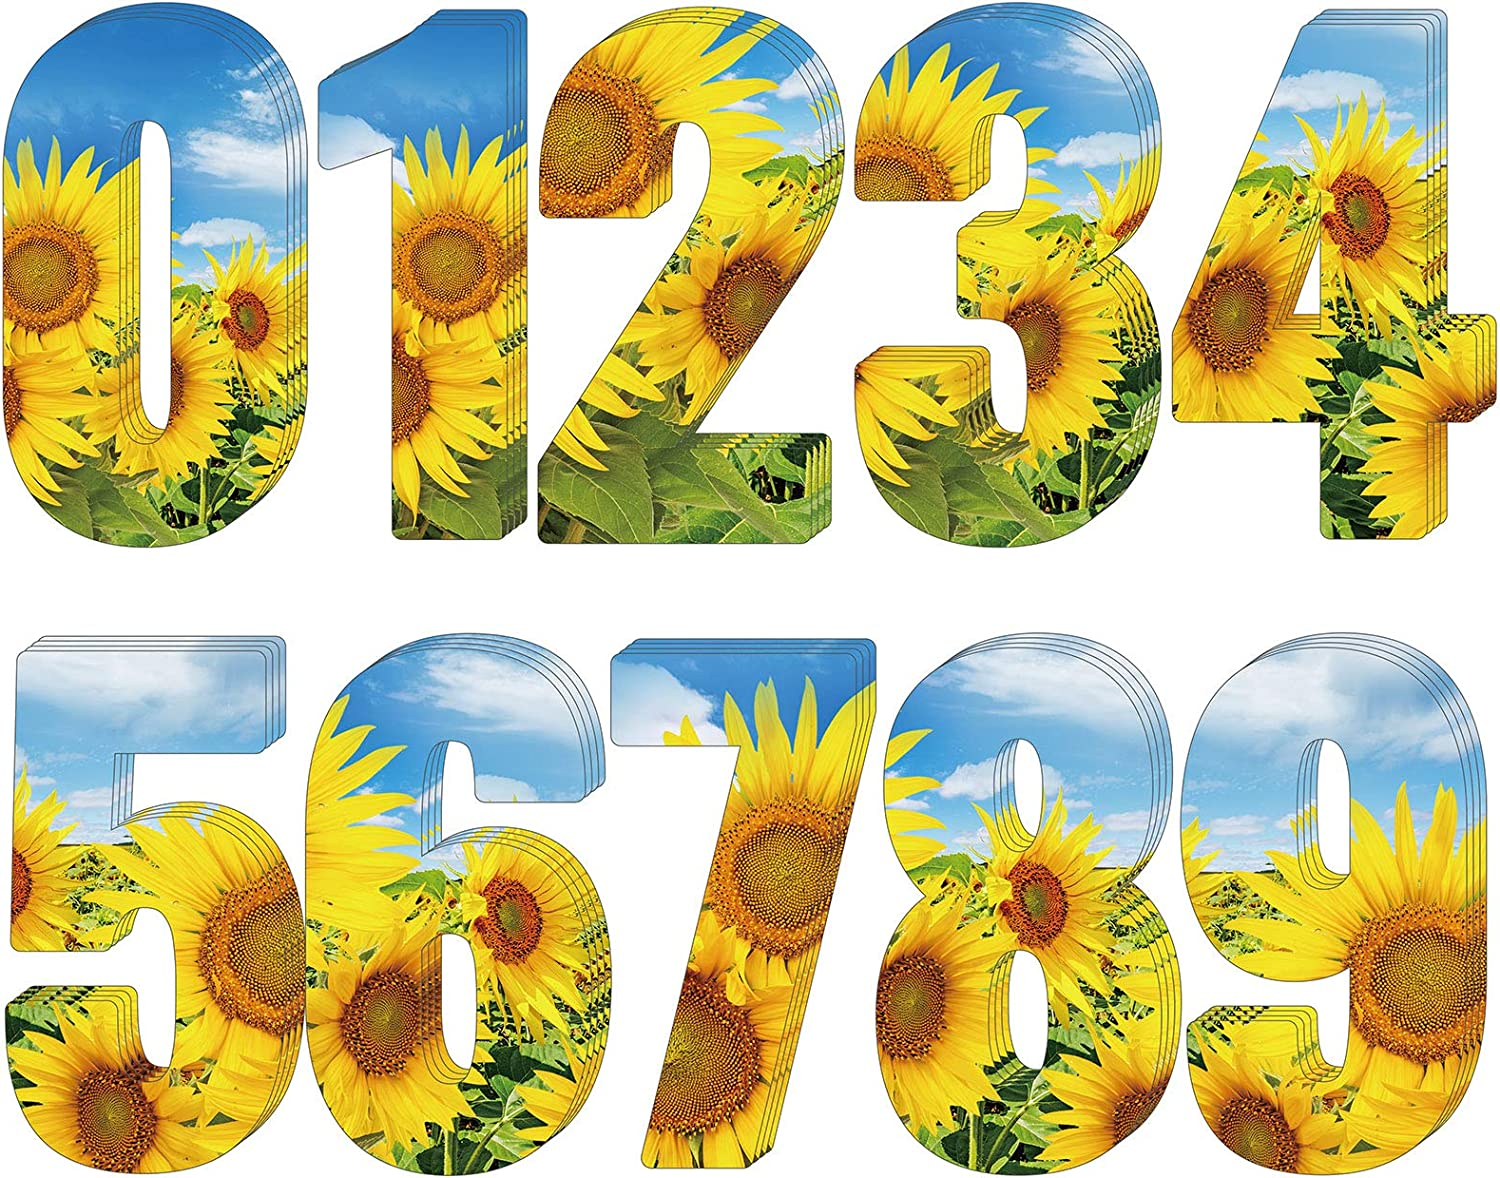 ADXCO 40 Pieces 4 Sheets Wheelie Bin Number Sunflower Sunflower Numbers Stickers Self Adhesive 0-9 Stickers Wheelie Bin Decorative Number Stickers for Home Office Classroom Decoration Supplies